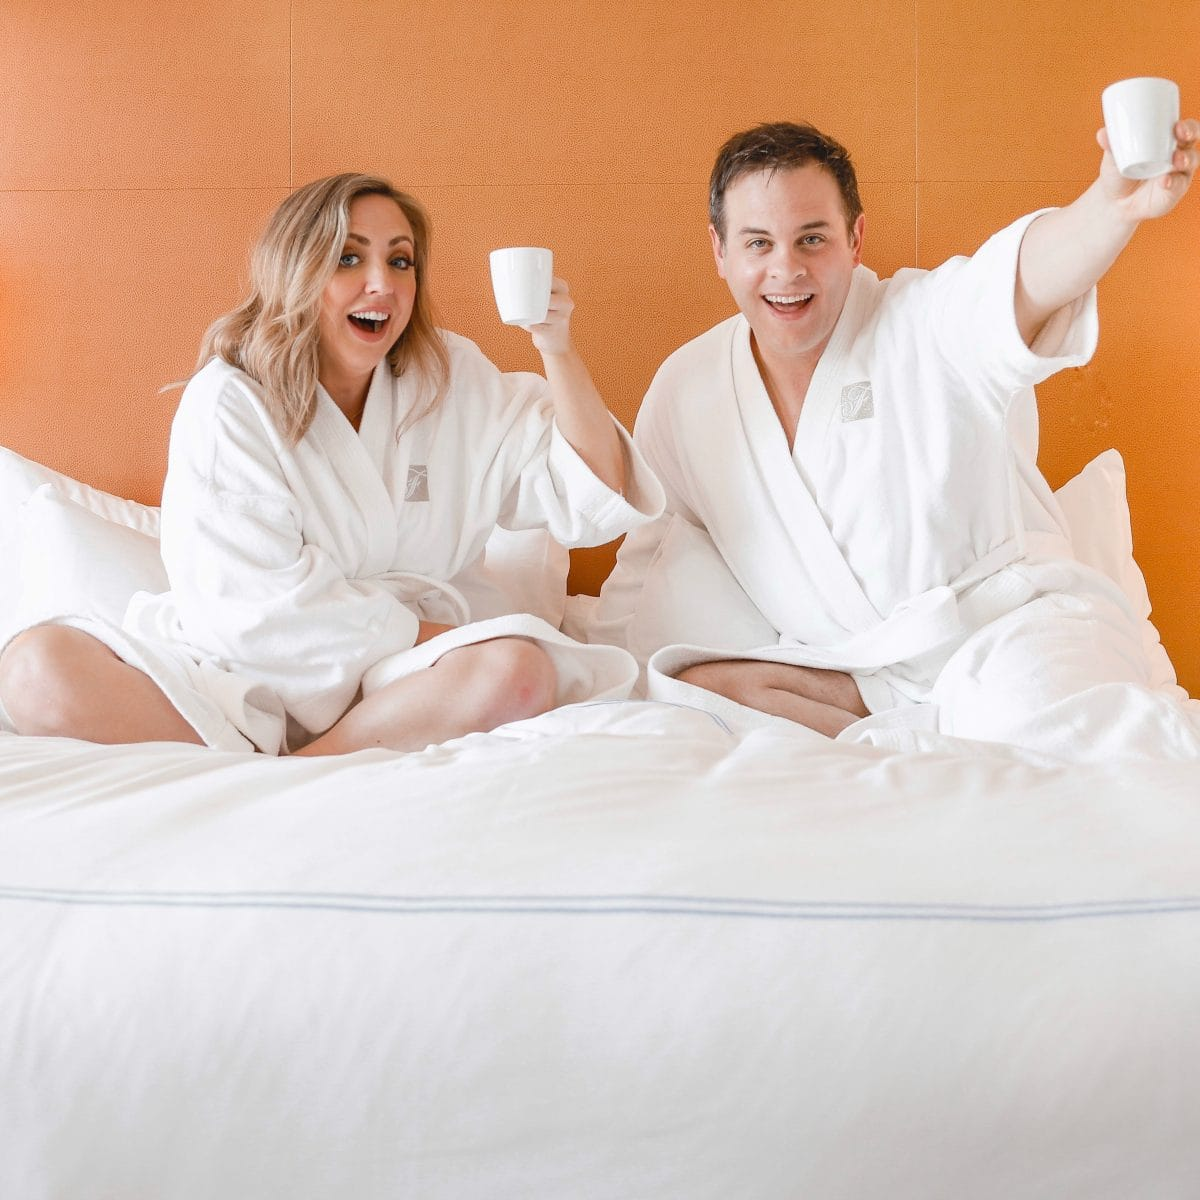 Houston lifestyle blogger Meg O. on the Go shares her couples' getaway to the Fairmont Austin